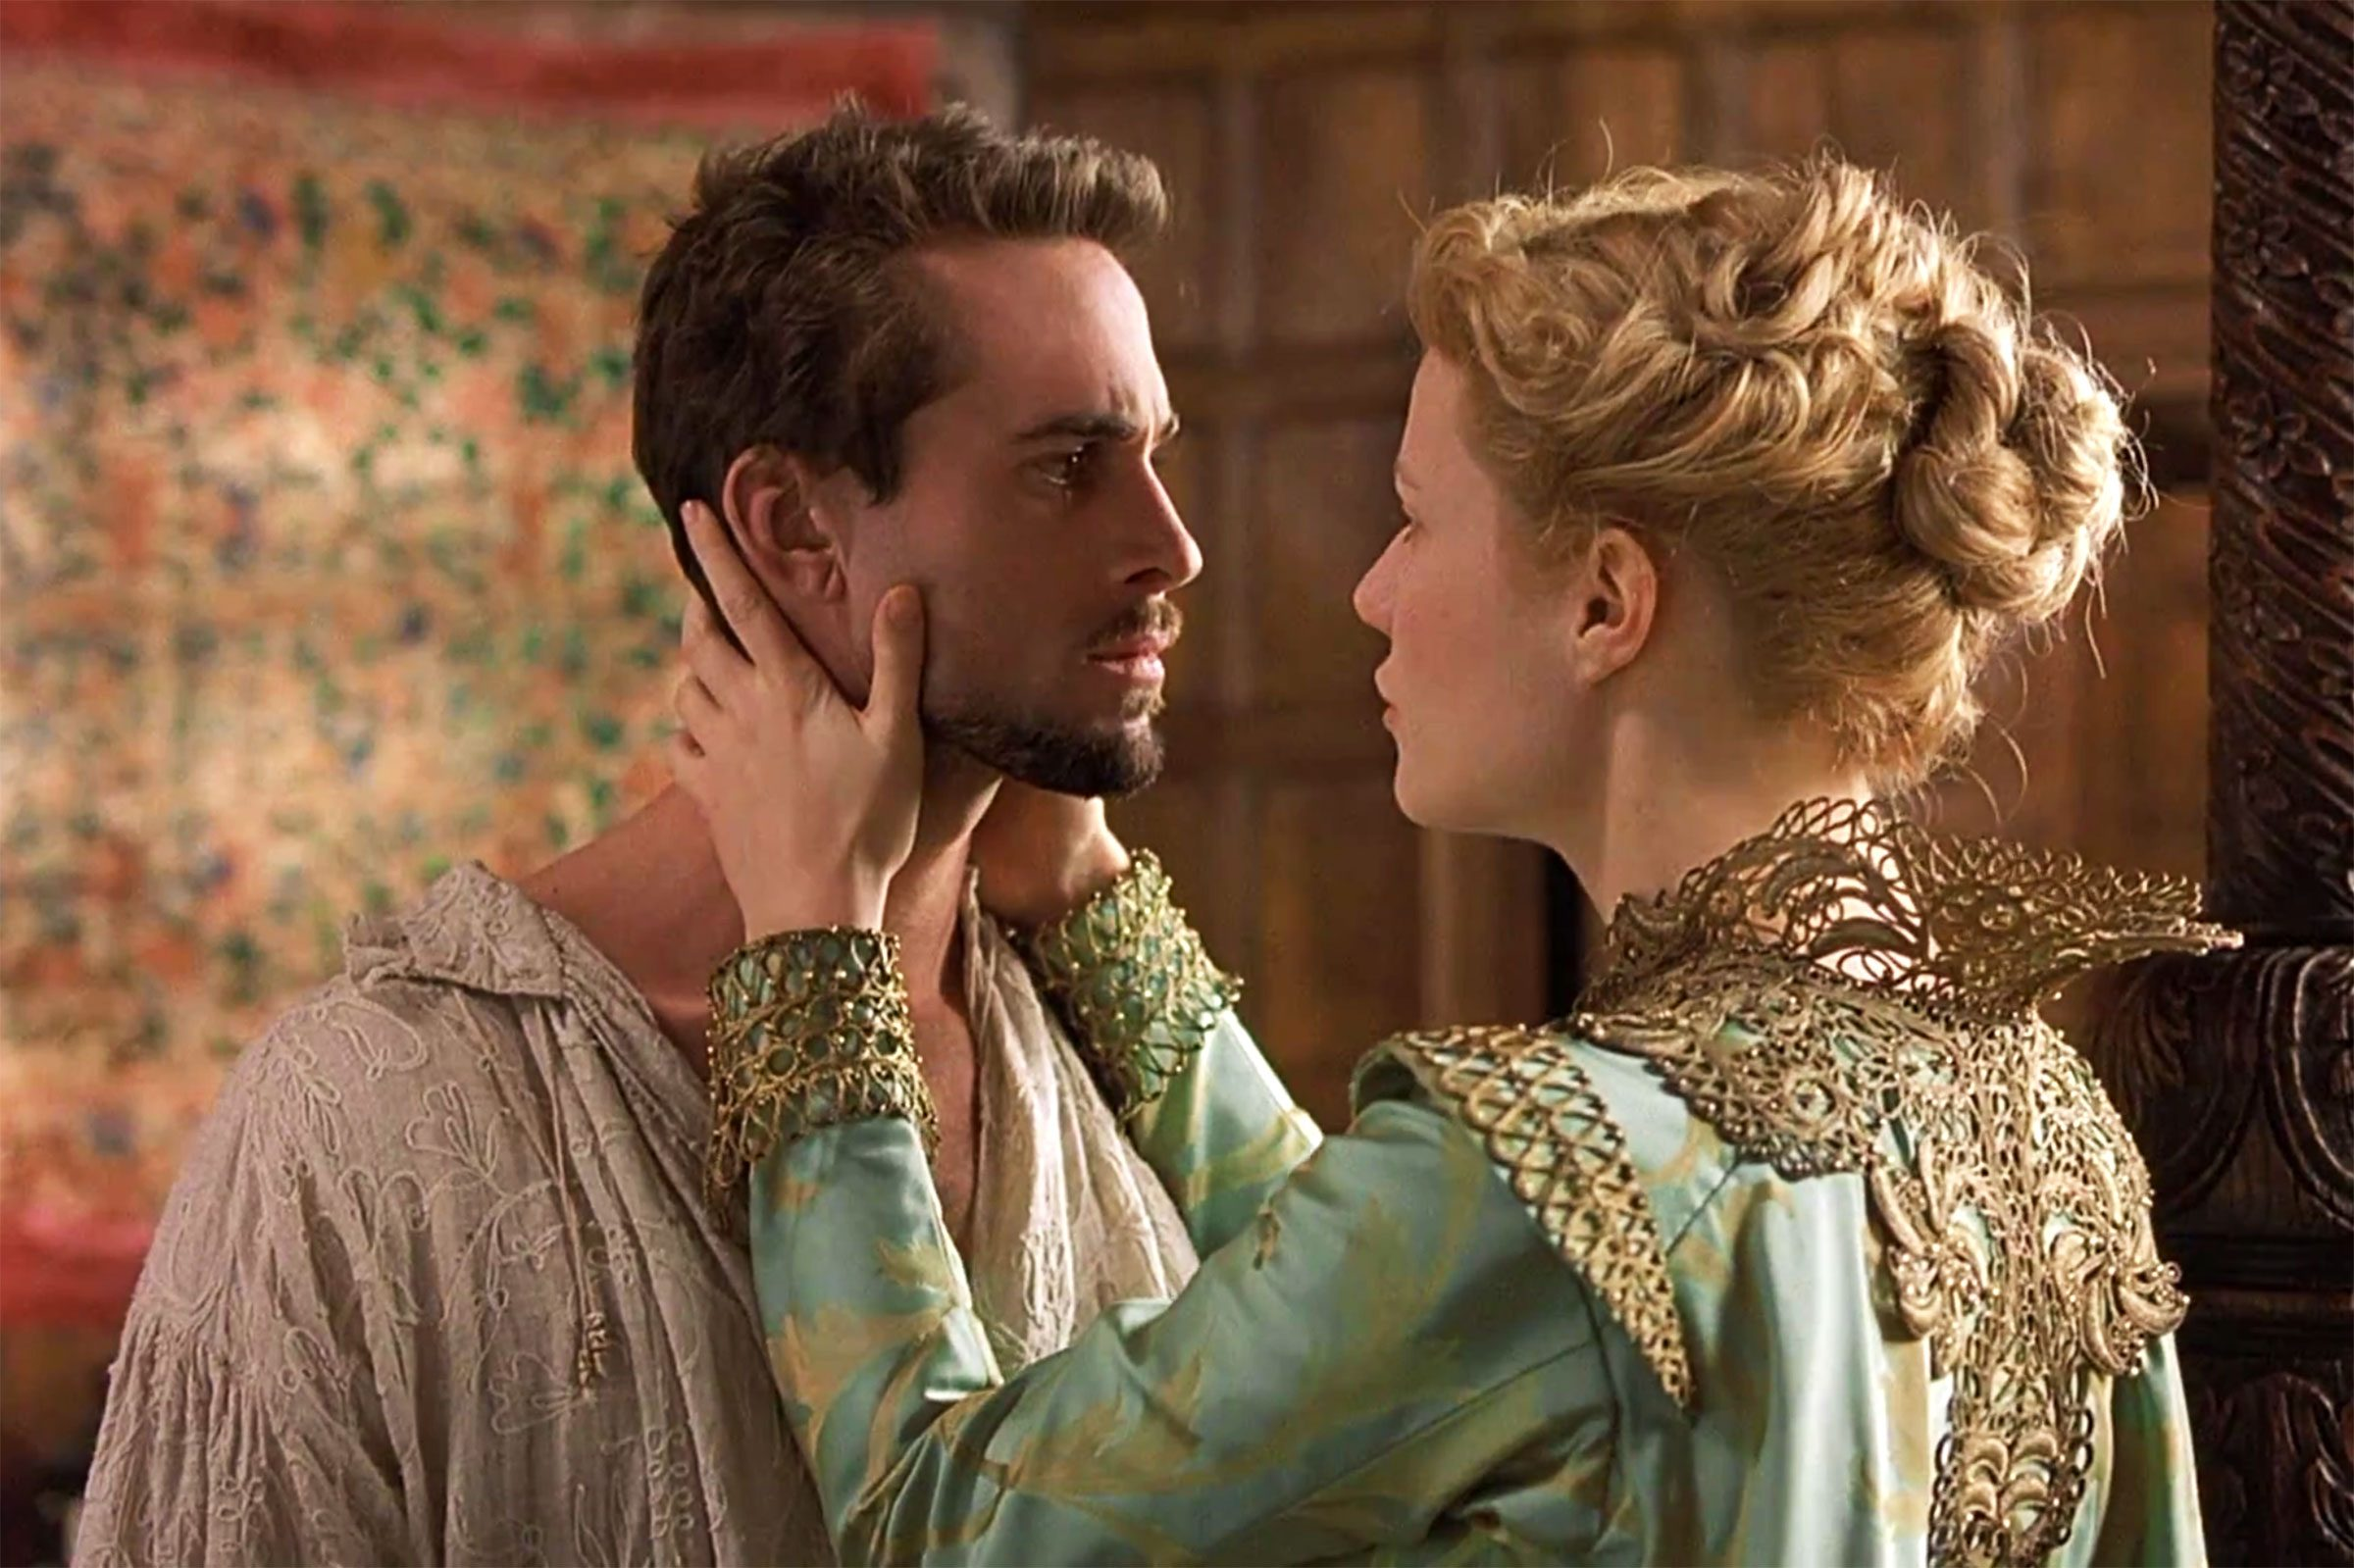 romantic movies most shakespeare films medieval courtly ages france middle reader